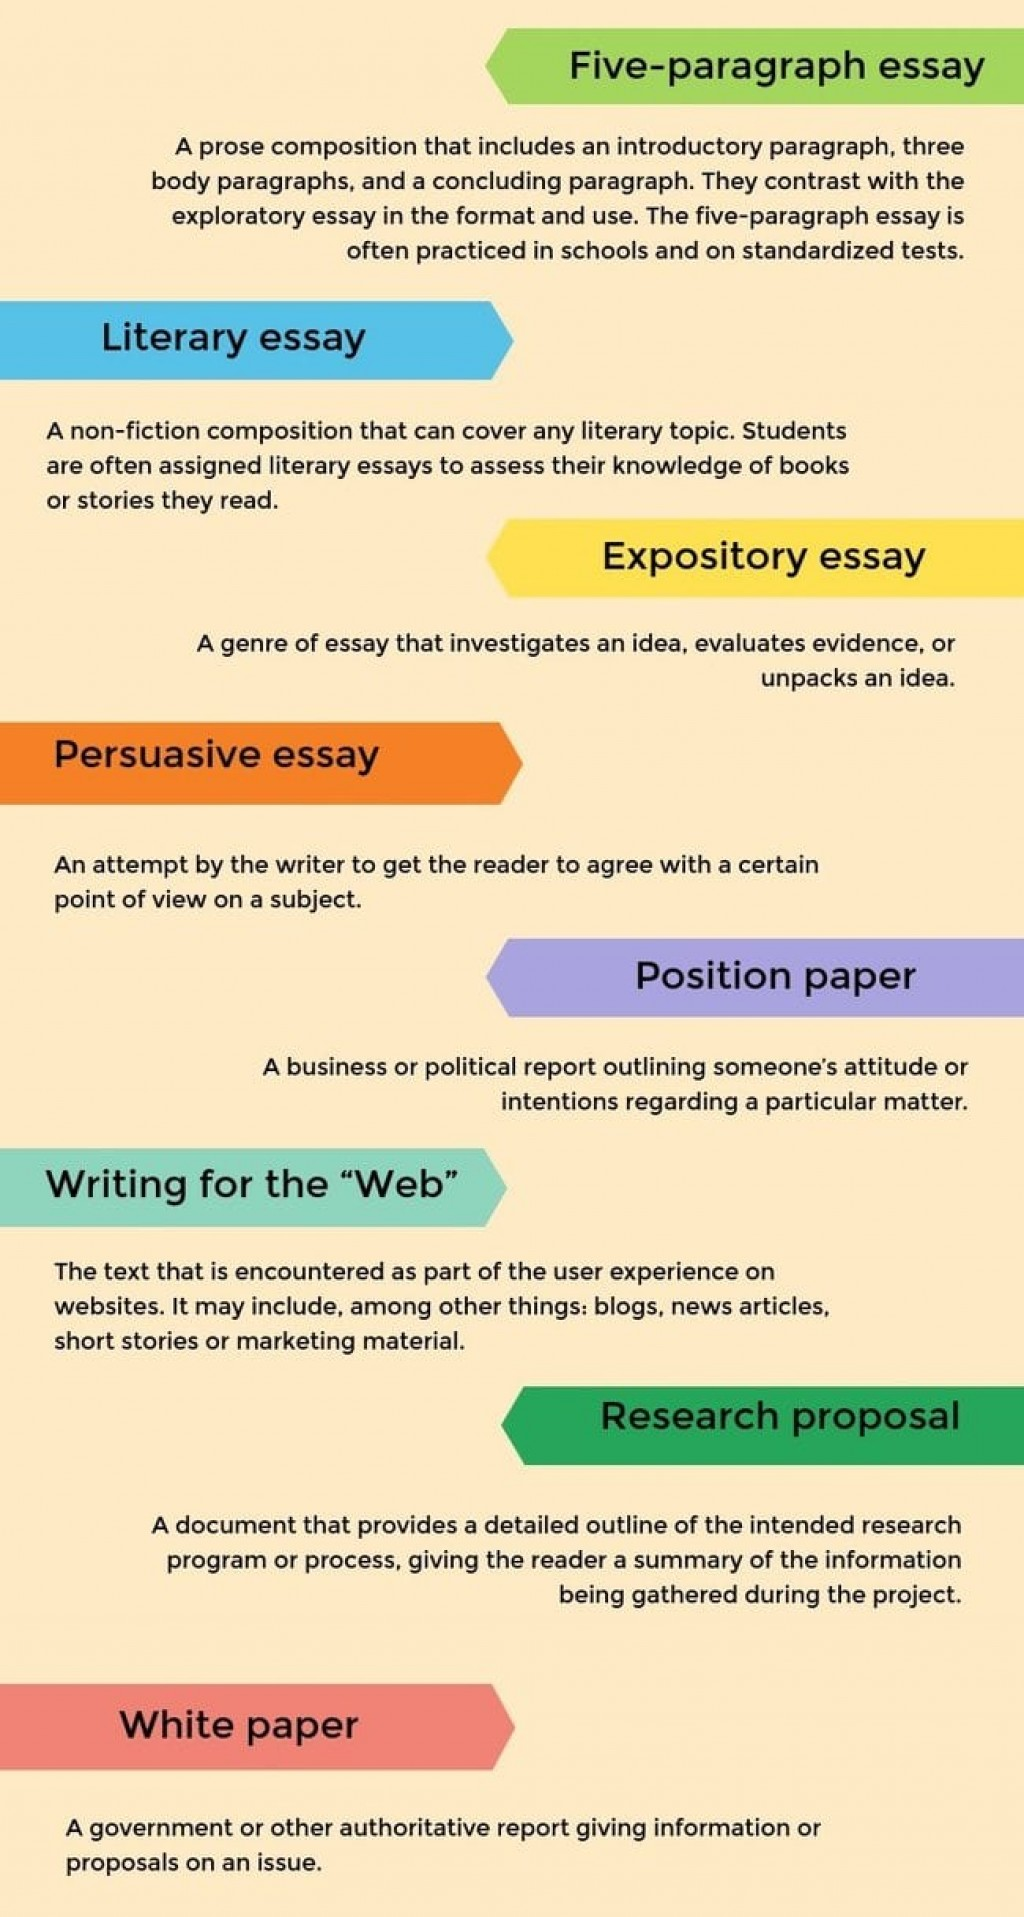 011 Oz Types Of Essays Essay Example Paragraph Best 5 Topics 7th Grade For Elementary Students Five List Large